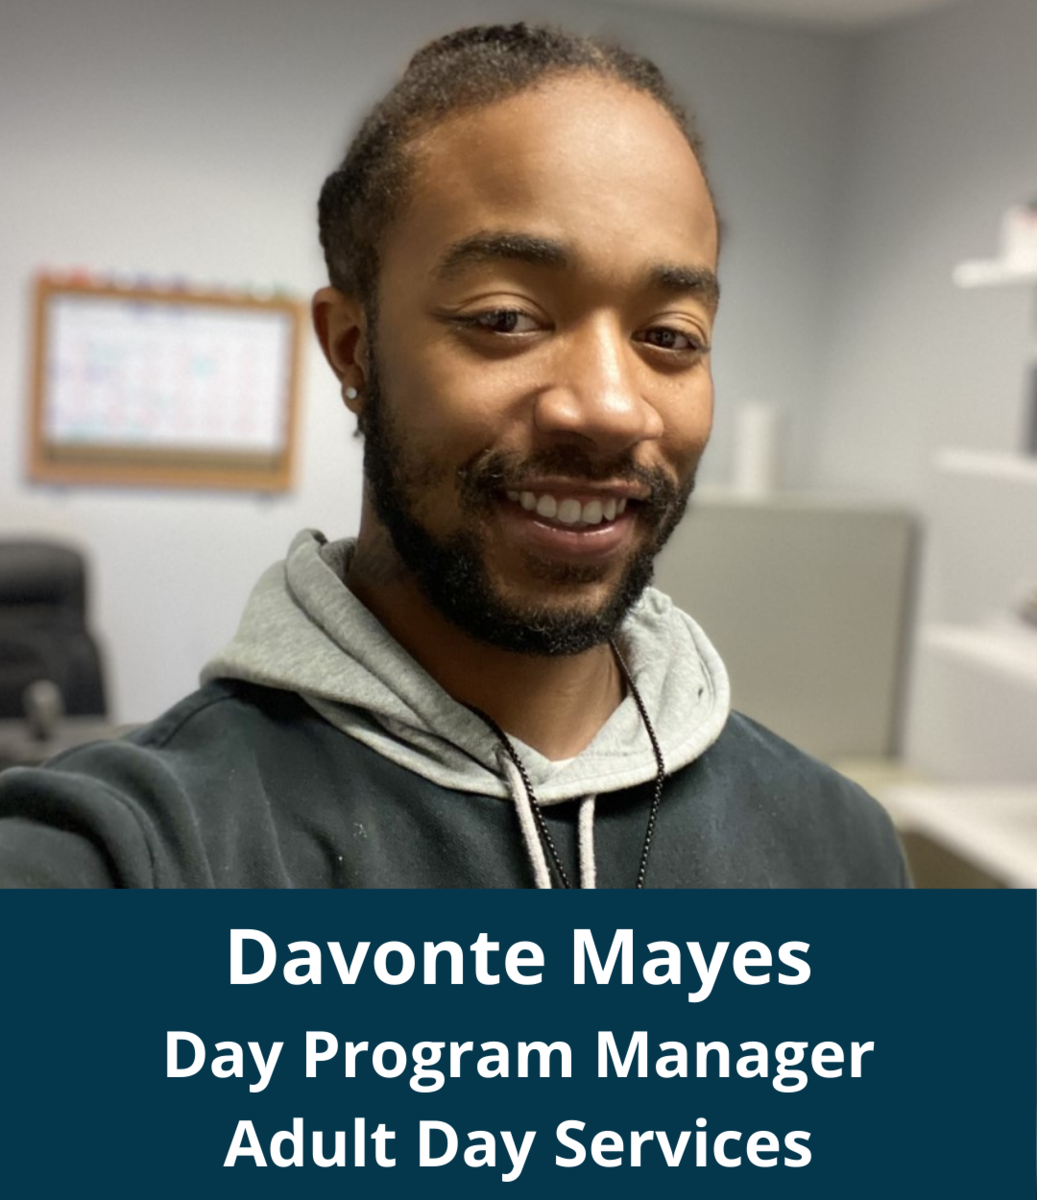 Davonte Mayes